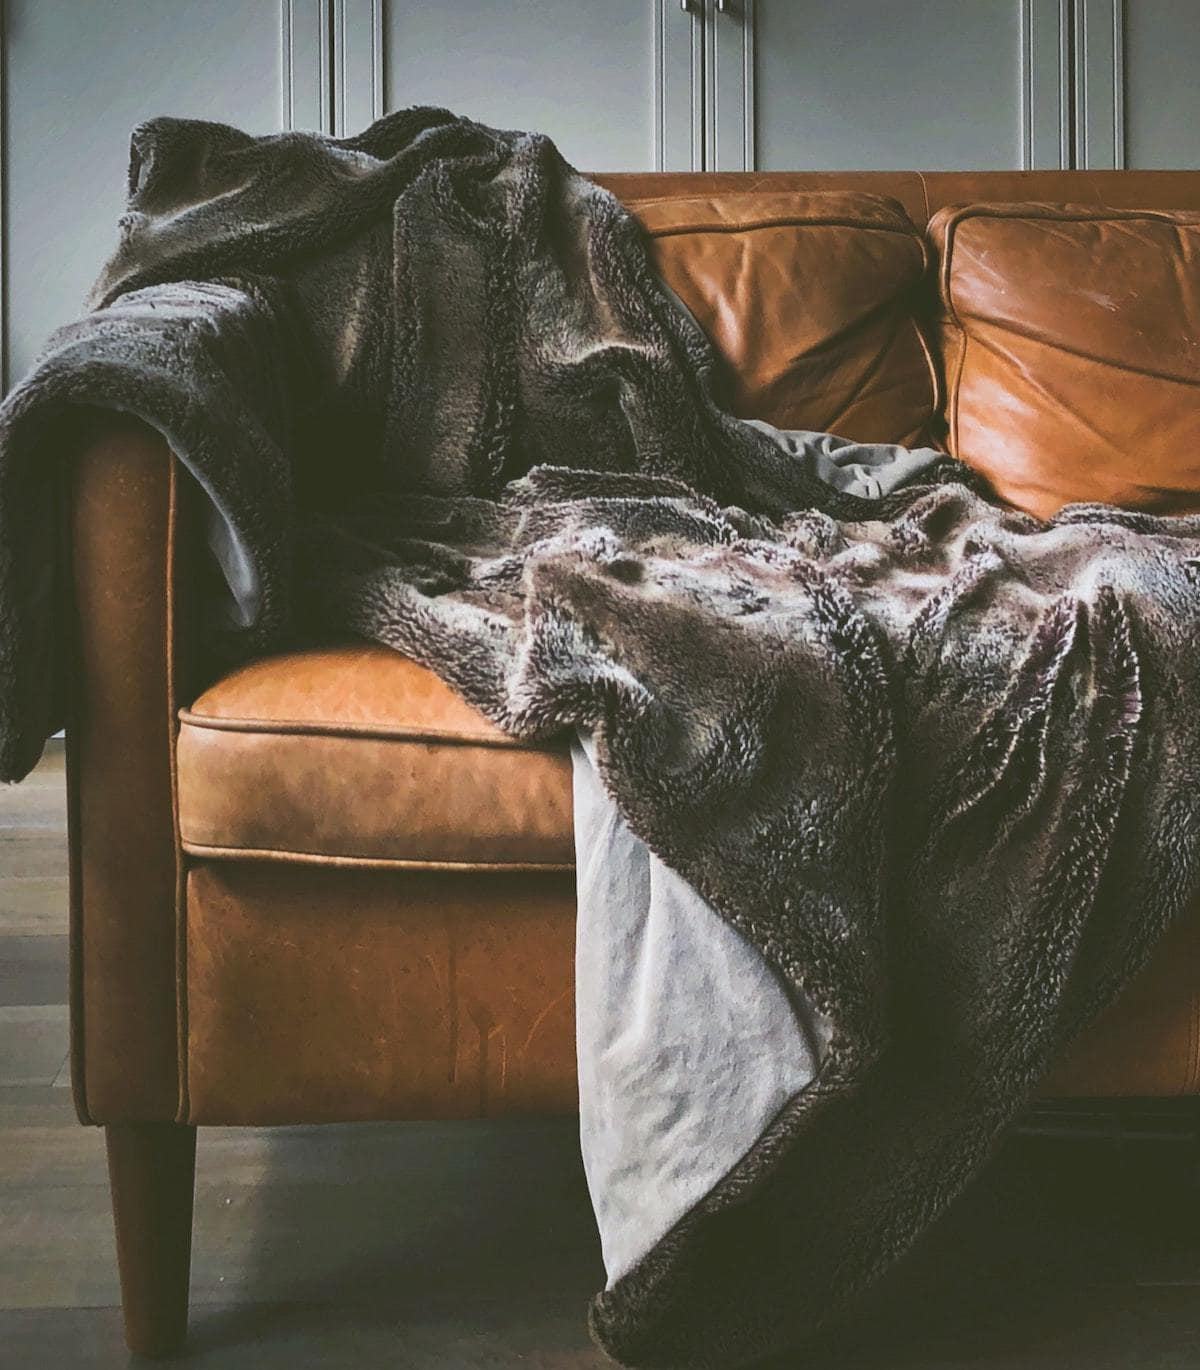 The secret to washing a sherpa blanket in a washer and dryer without matting is to wash cold with gentle detergent, fluff, and air dry. Need help making your sherpa blanket soft again? Keep reading!